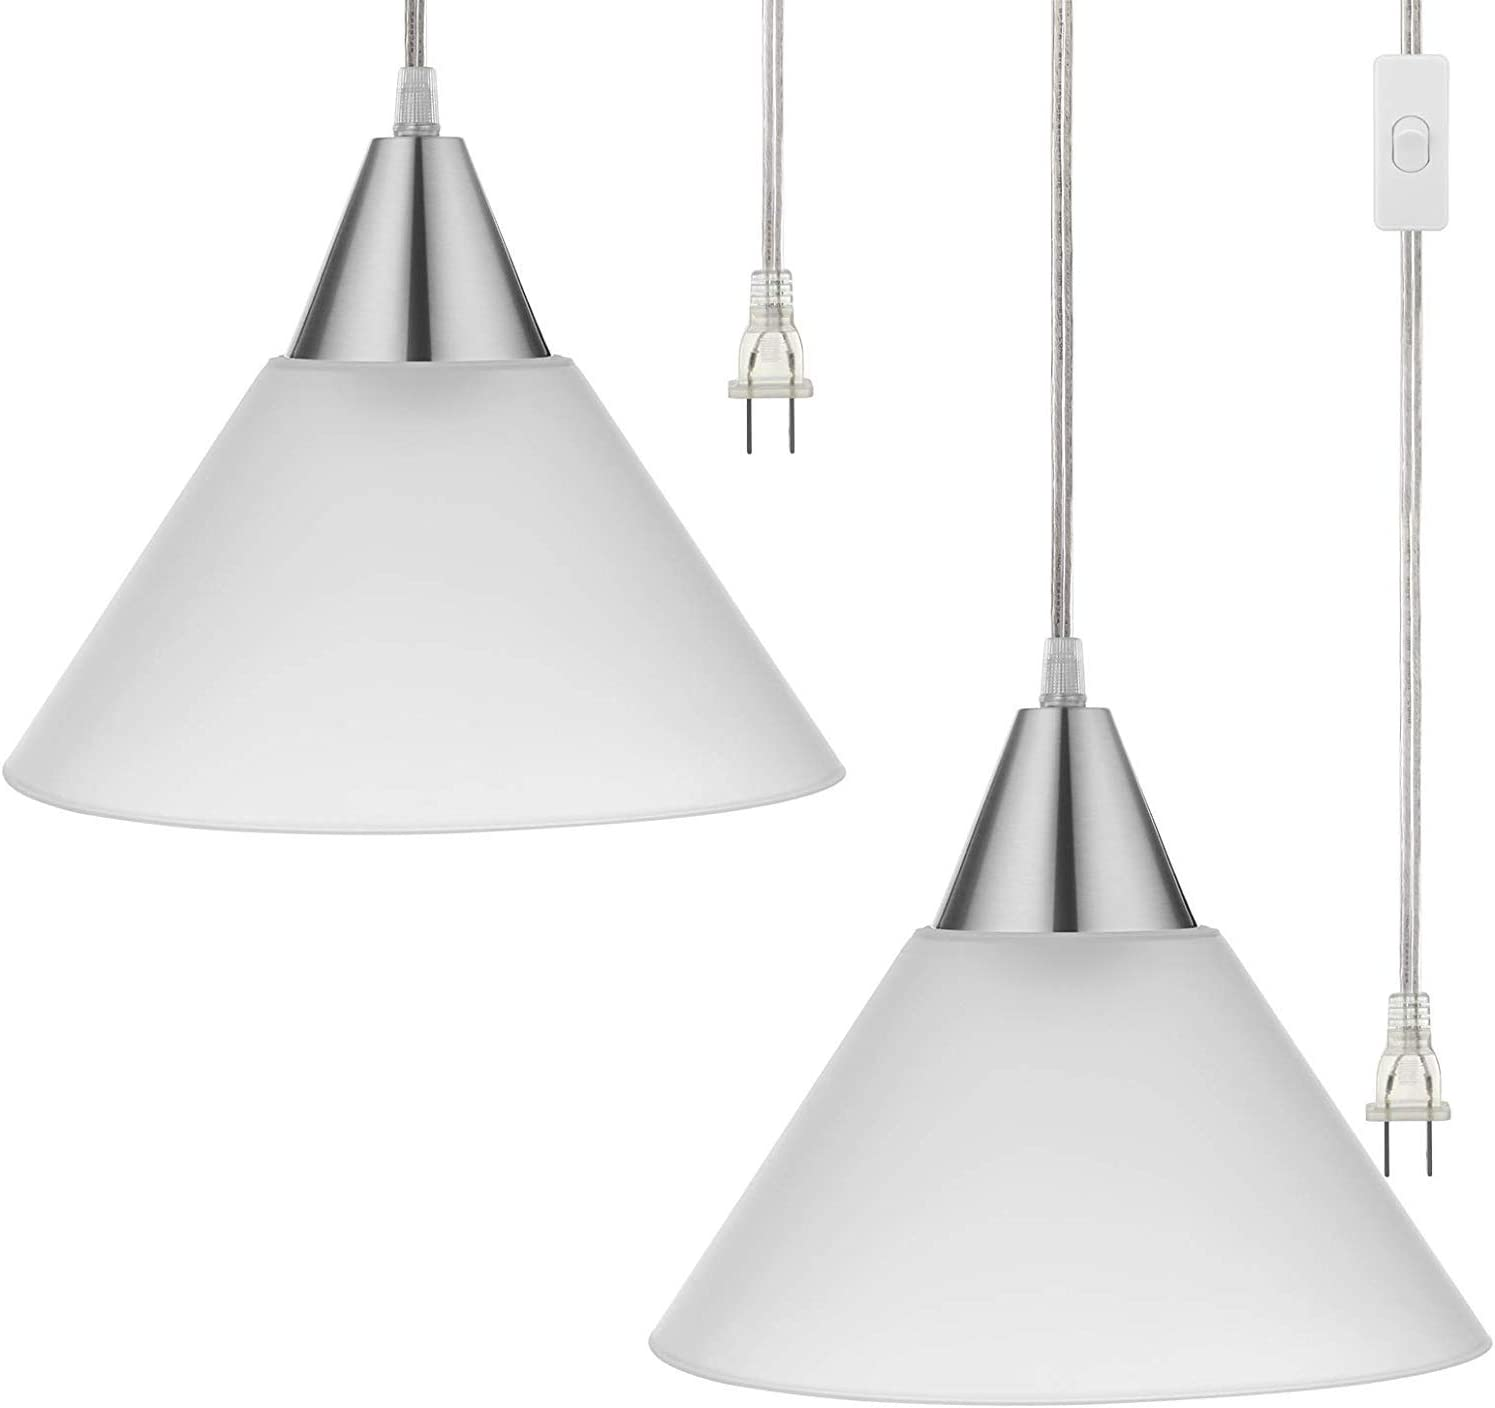 Amazon Com Dewenwils Plug In Pendant Light Hanging Light With 15ft Clear Cord On Off Switch Frosted Plastic White Shade Hanging Ceiling Light For Living Room Bedroom Dining Hall Pack Of 2 Home Improvement